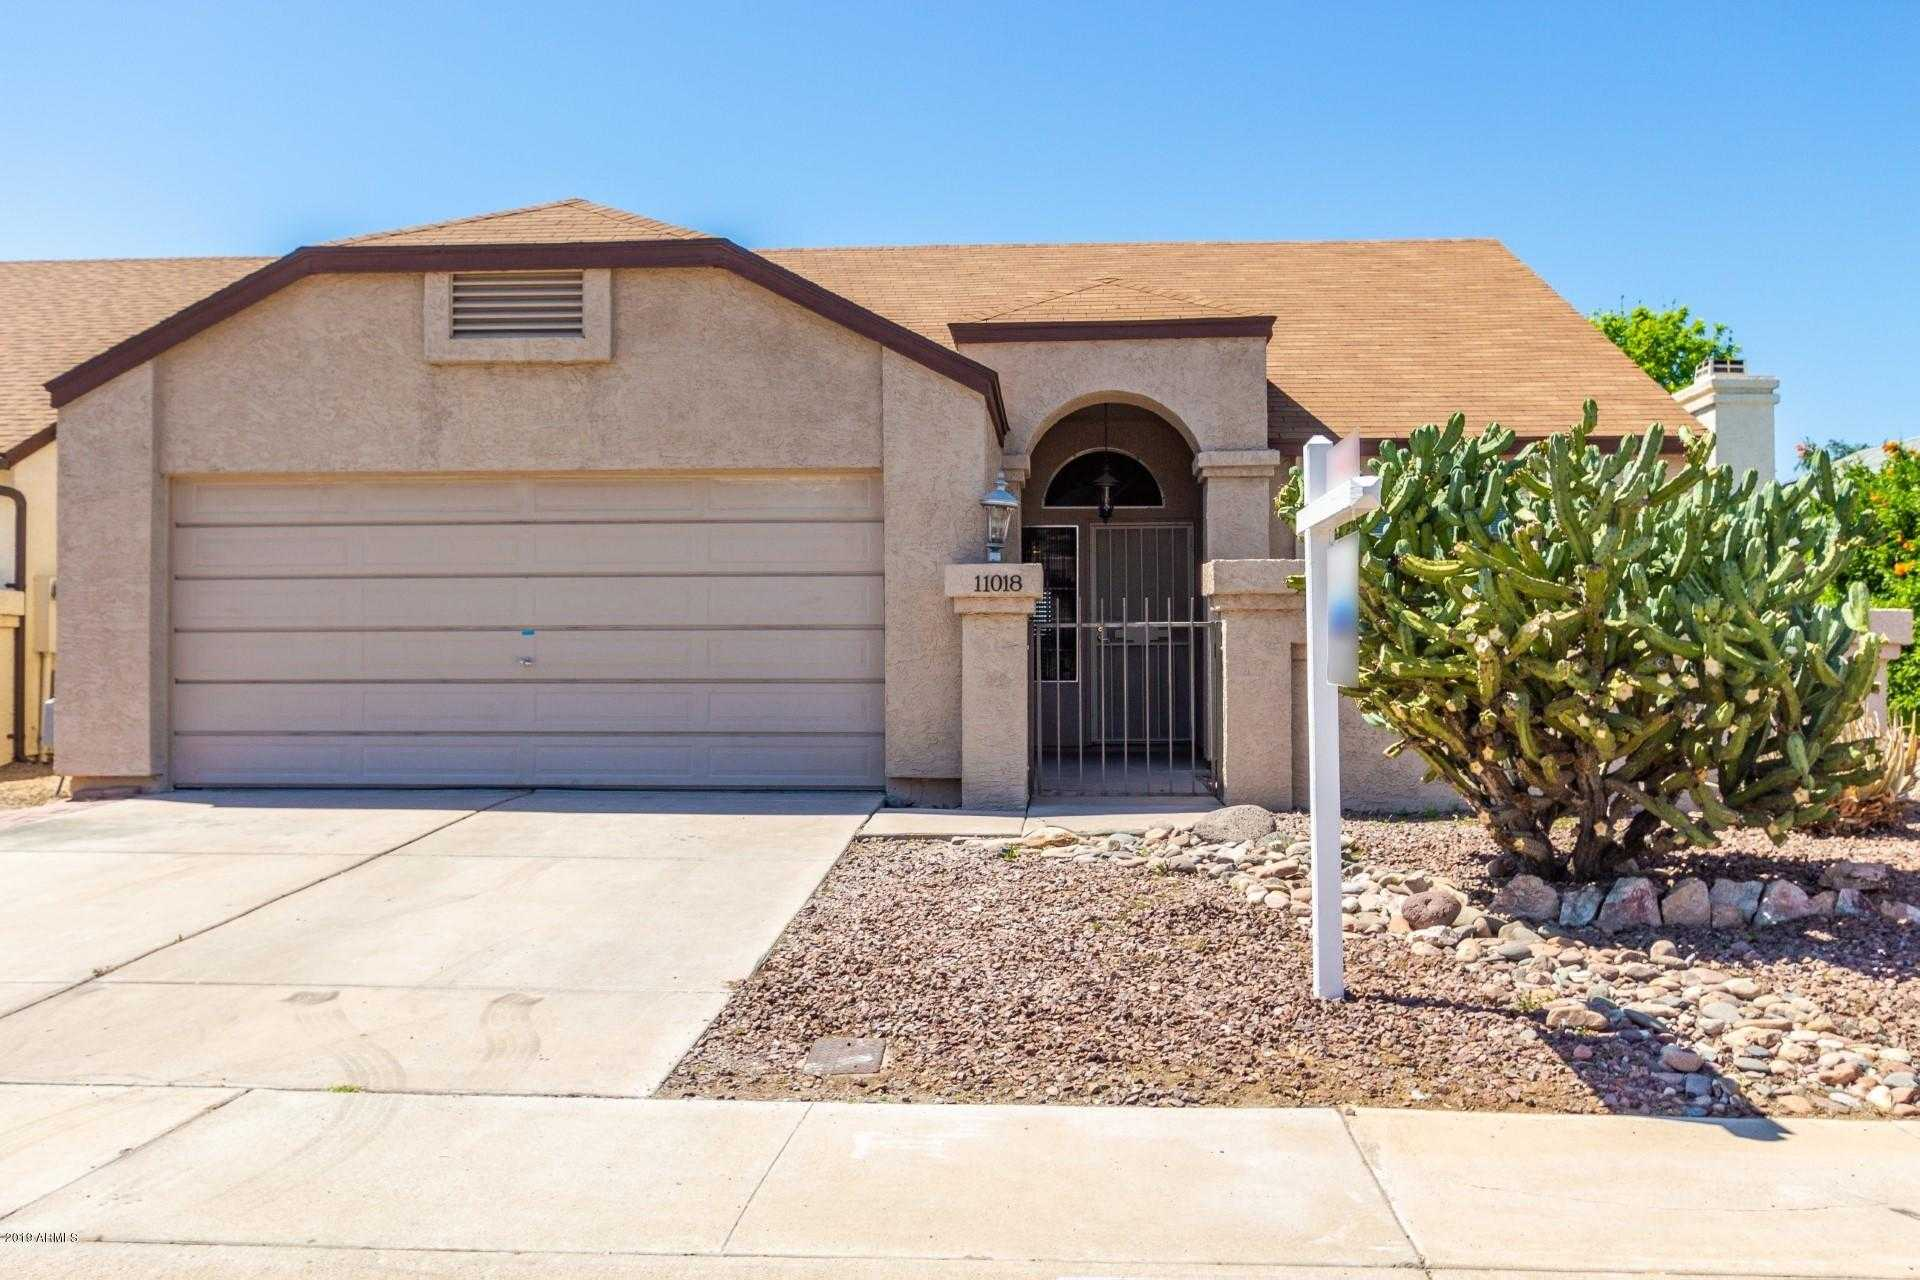 $229,000 - 3Br/2Ba - Home for Sale in Oakhollow Lots 1-209 & Tr A, Glendale